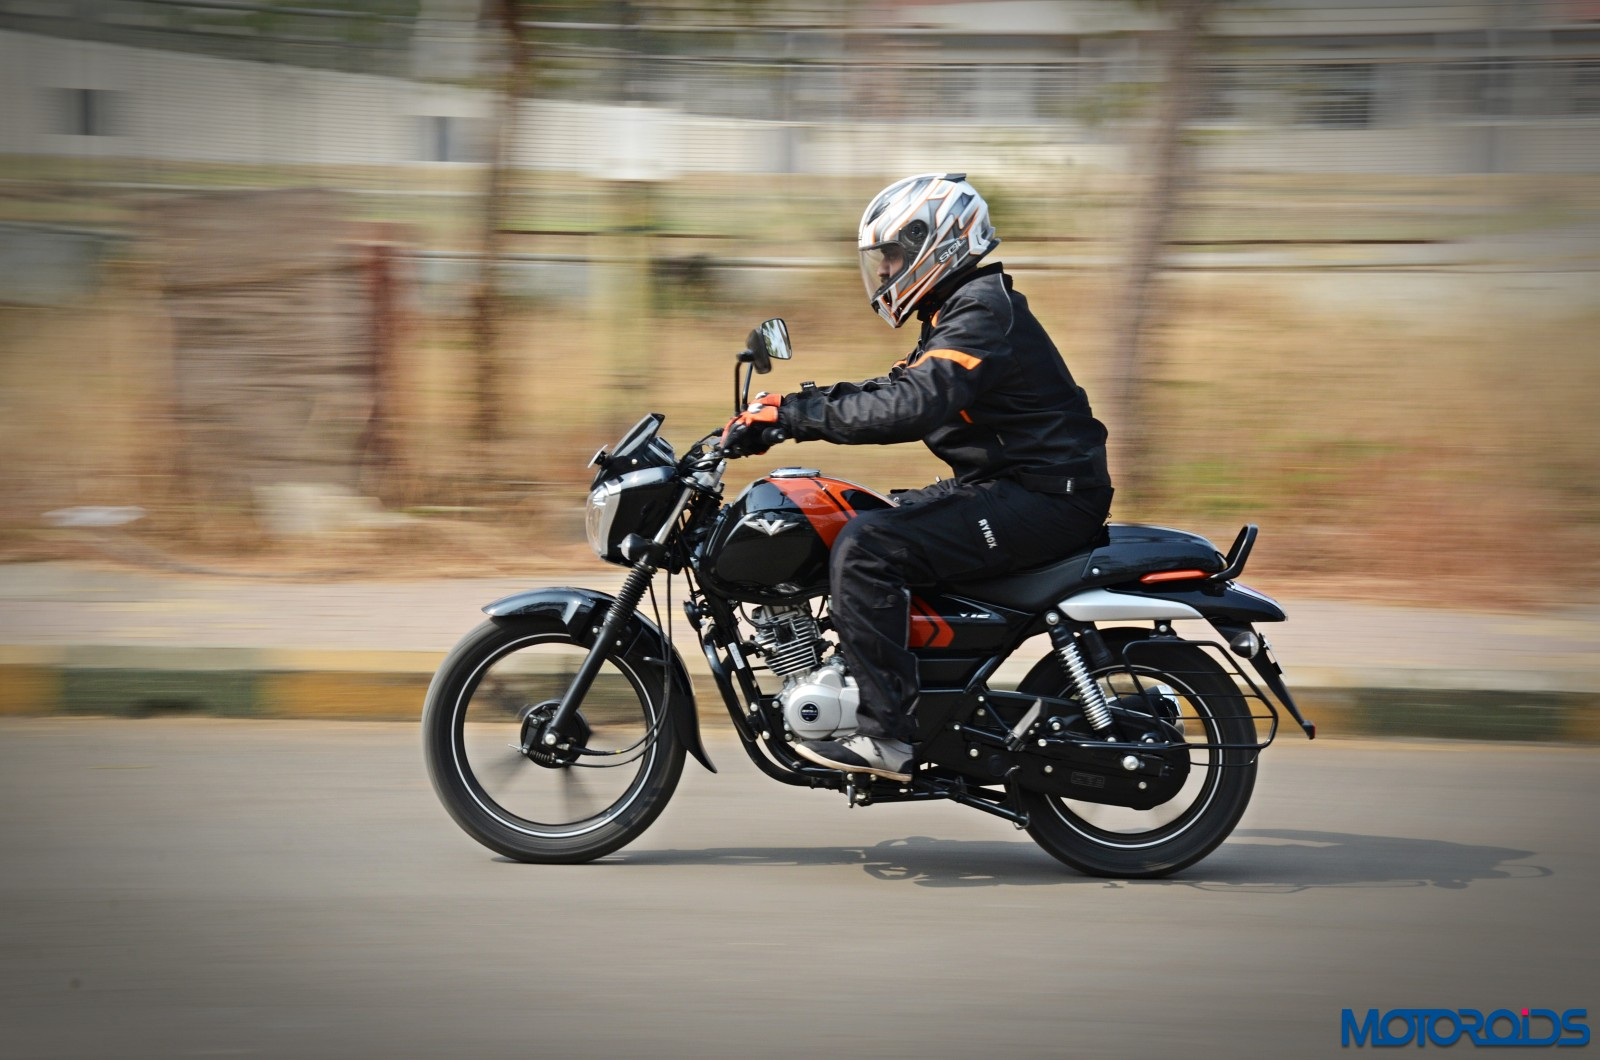 Bajaj-V12-Review-Action-Shots-6